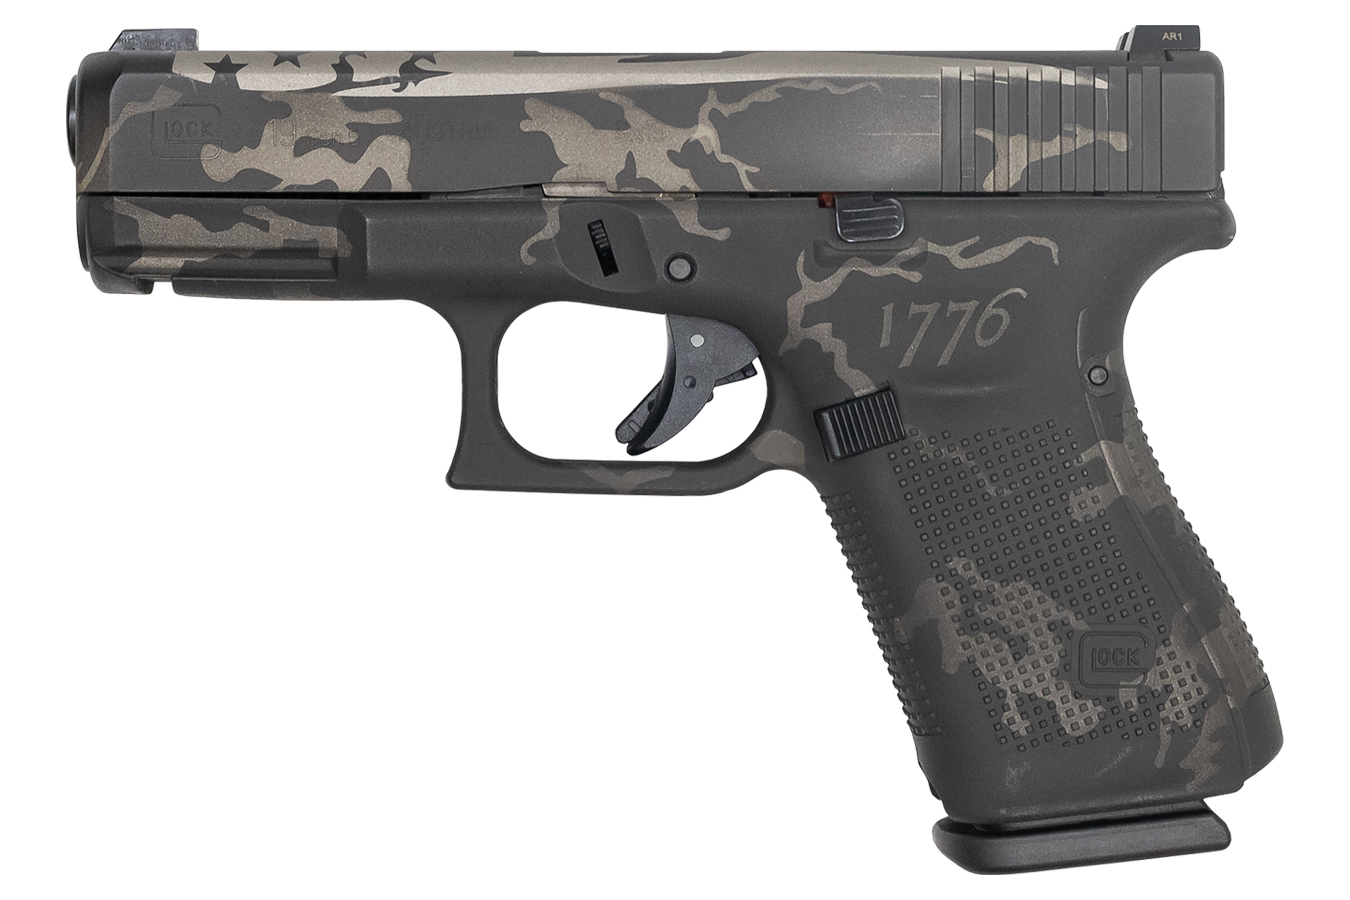 No. 30 Best Selling: GLOCK 19 GEN5 1776 BLK/GRY CAMO